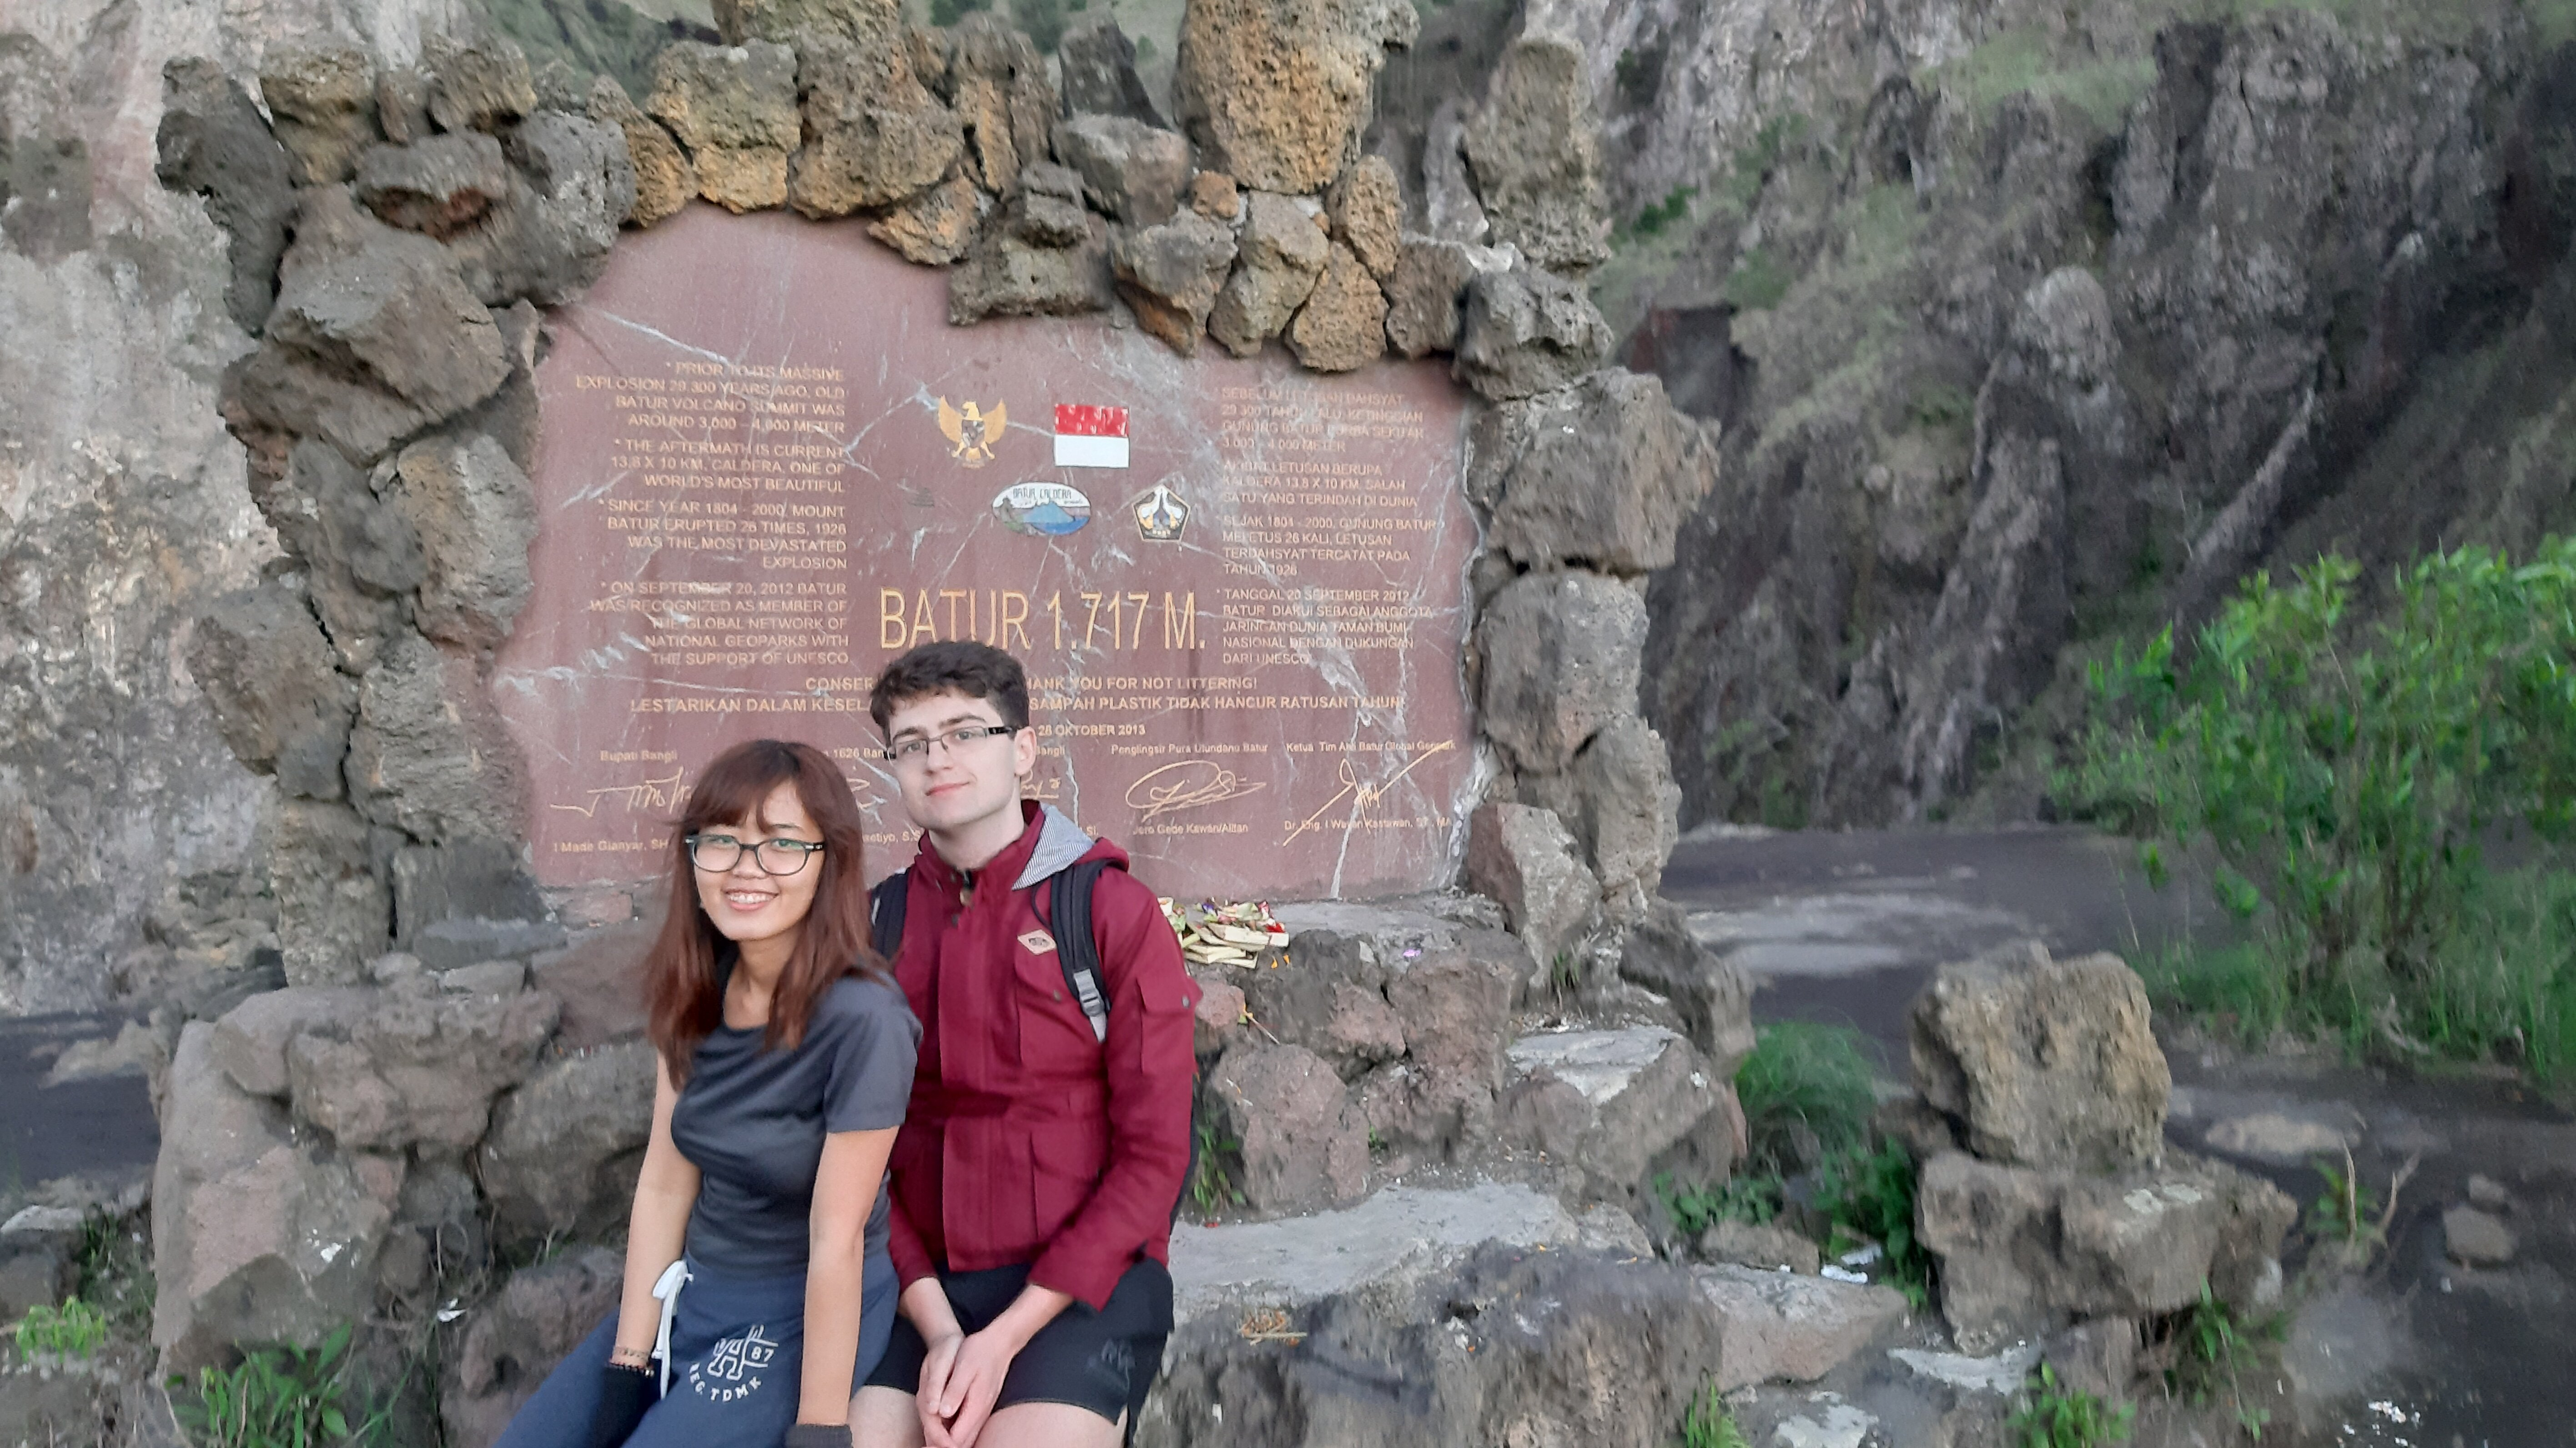 Surprisingly, this fancy monument was not at the summit of Batur.